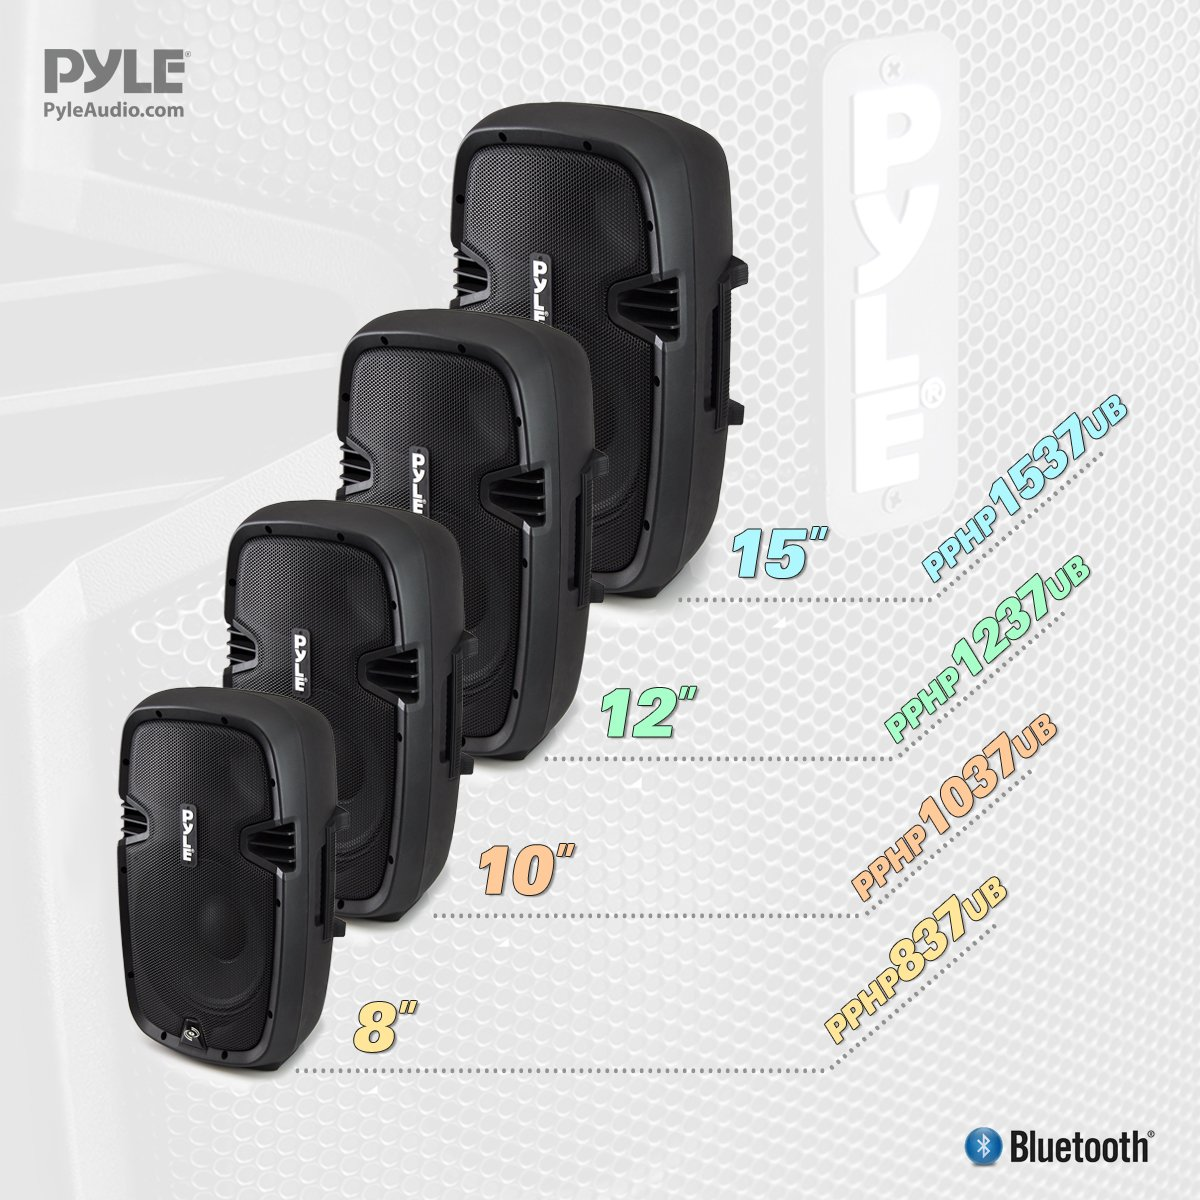 Pyle Powered Active Bluetooth PA